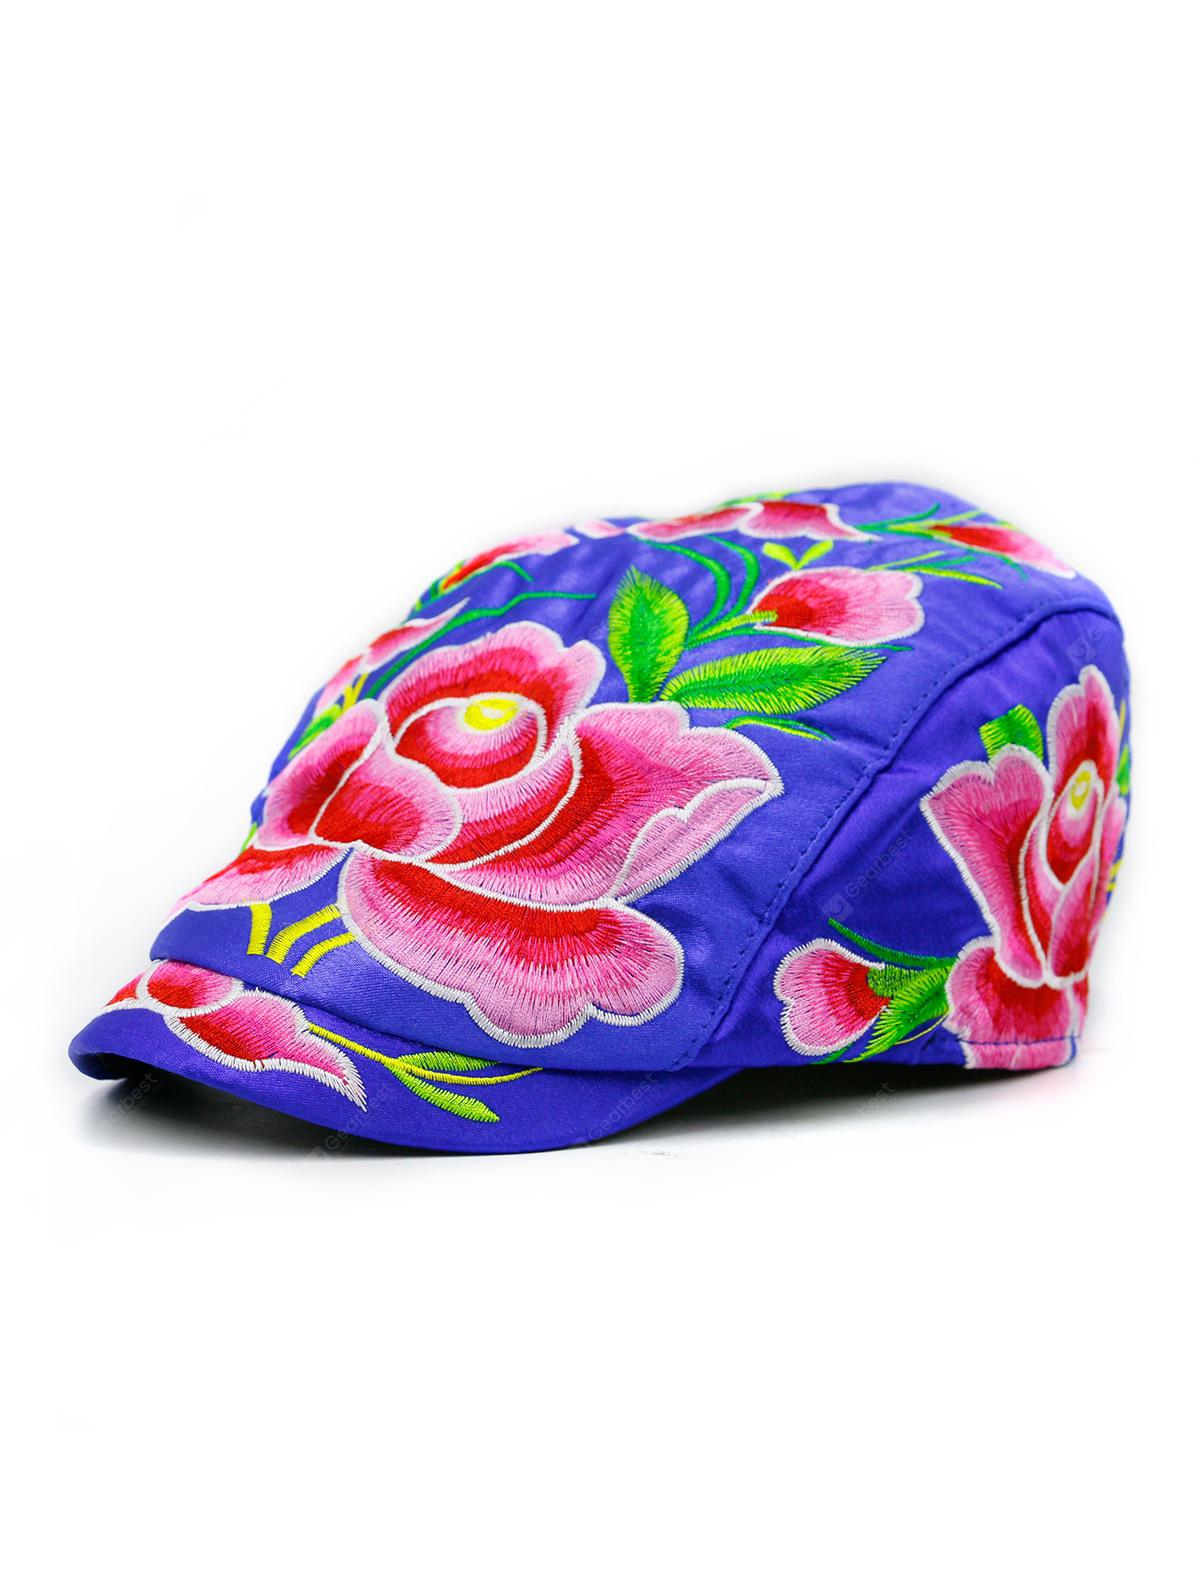 69d764bf Ivy Hat with Lotus Flower Embroidery - $6.81 Free Shipping|GearBest ...